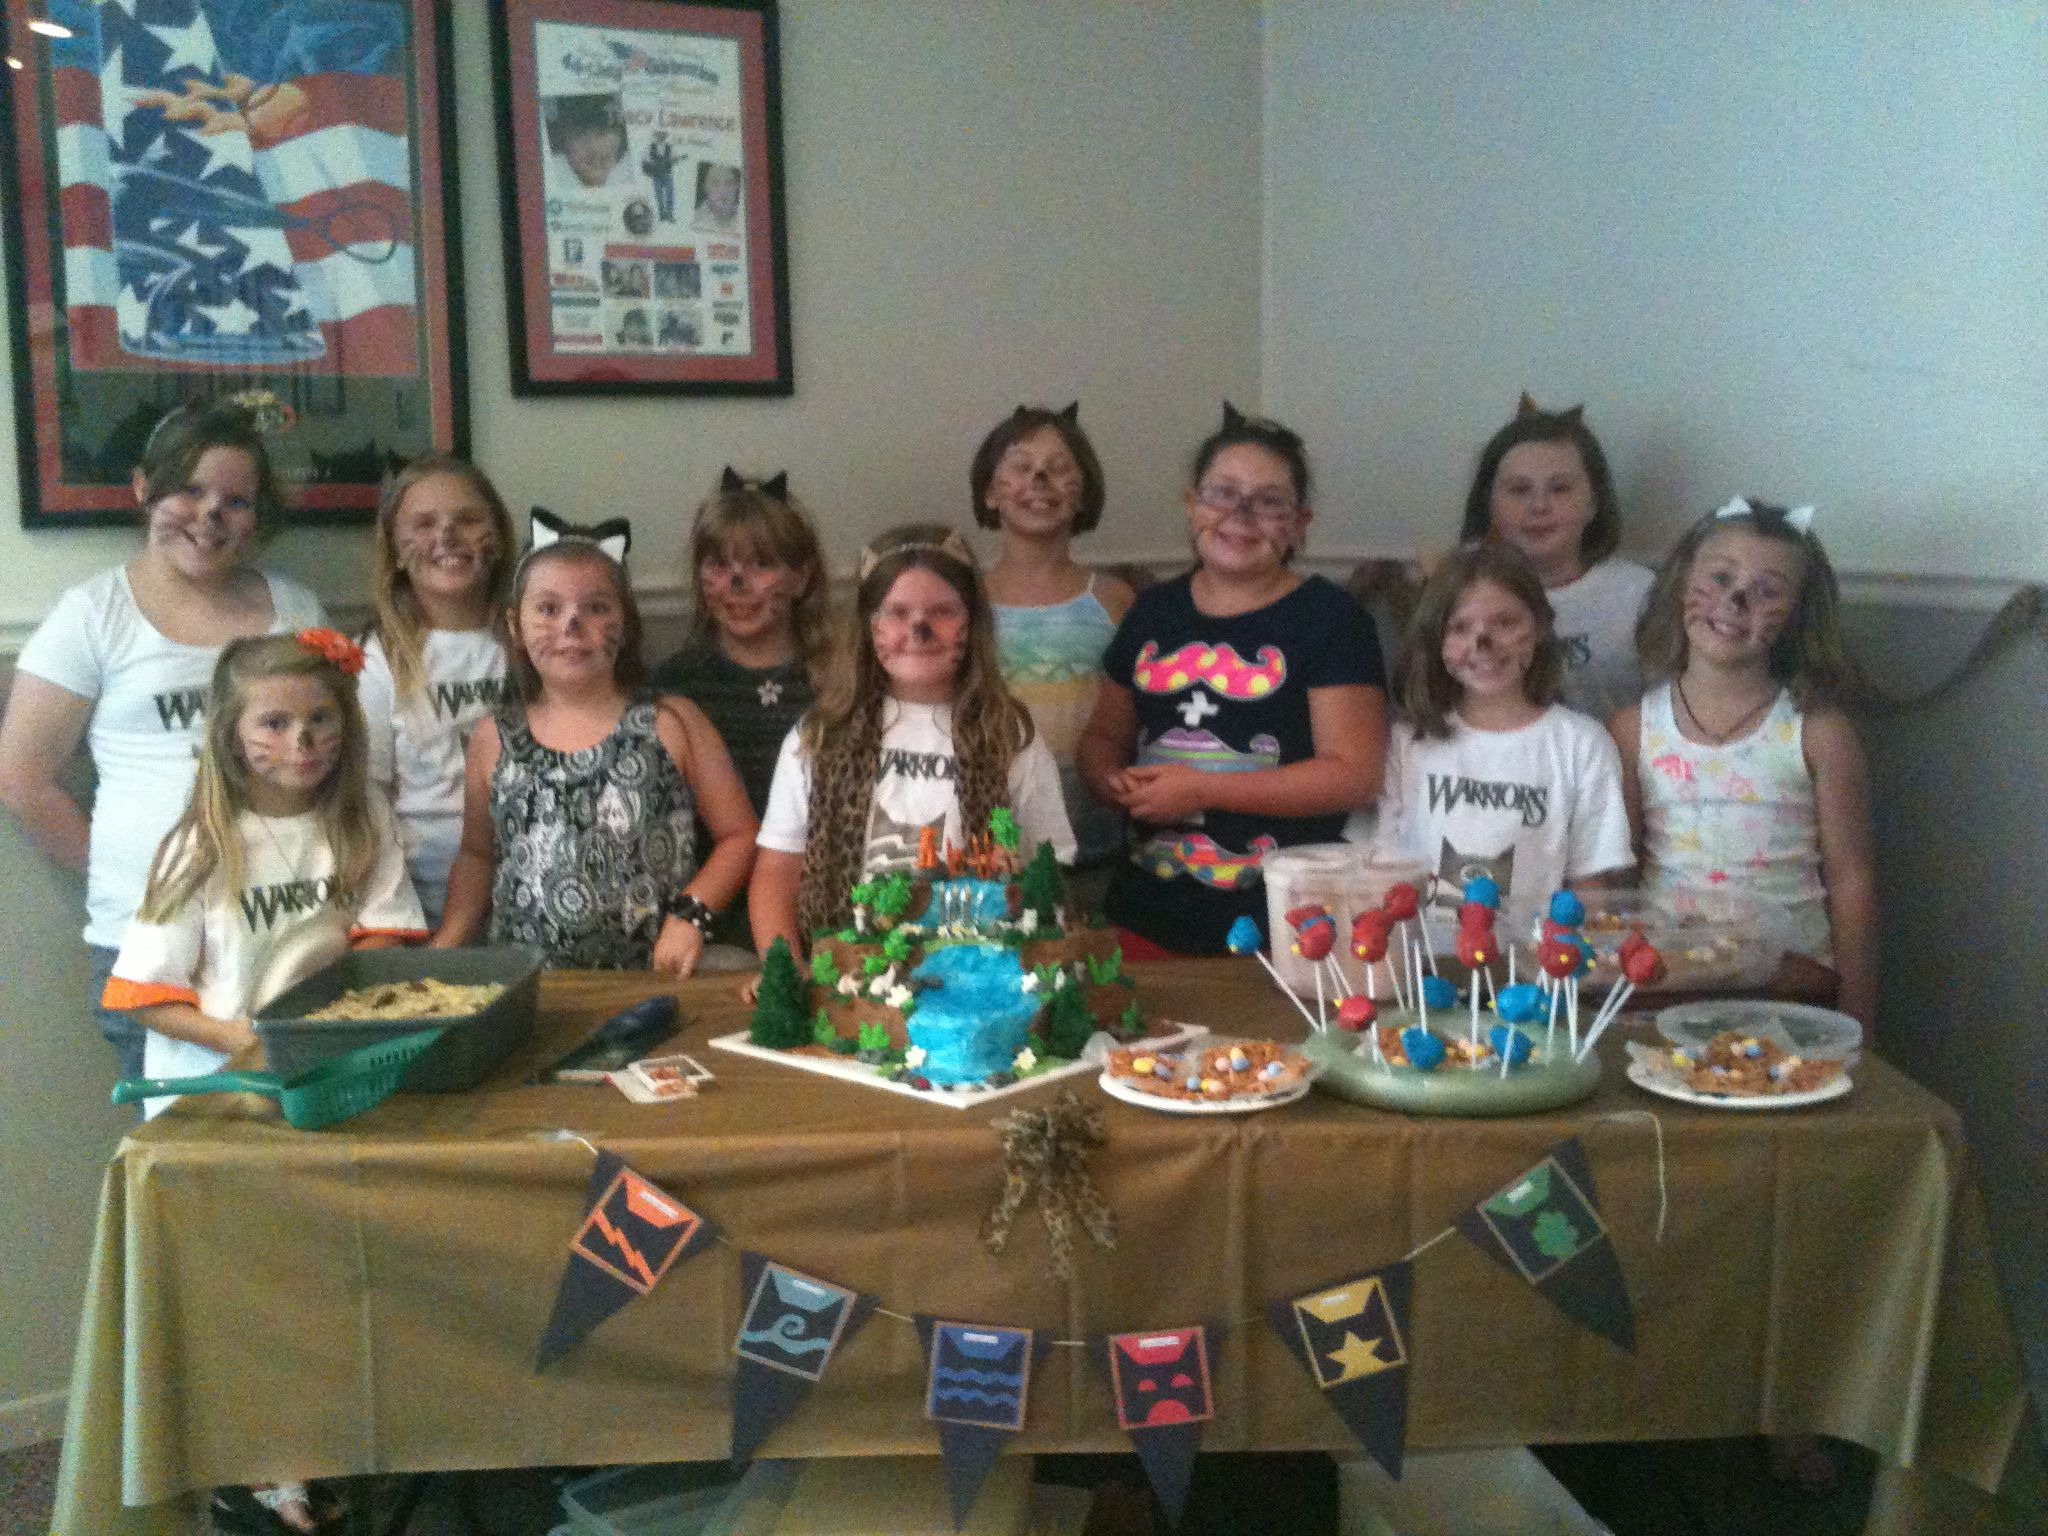 Warrior Cats birthday party was a huge success!